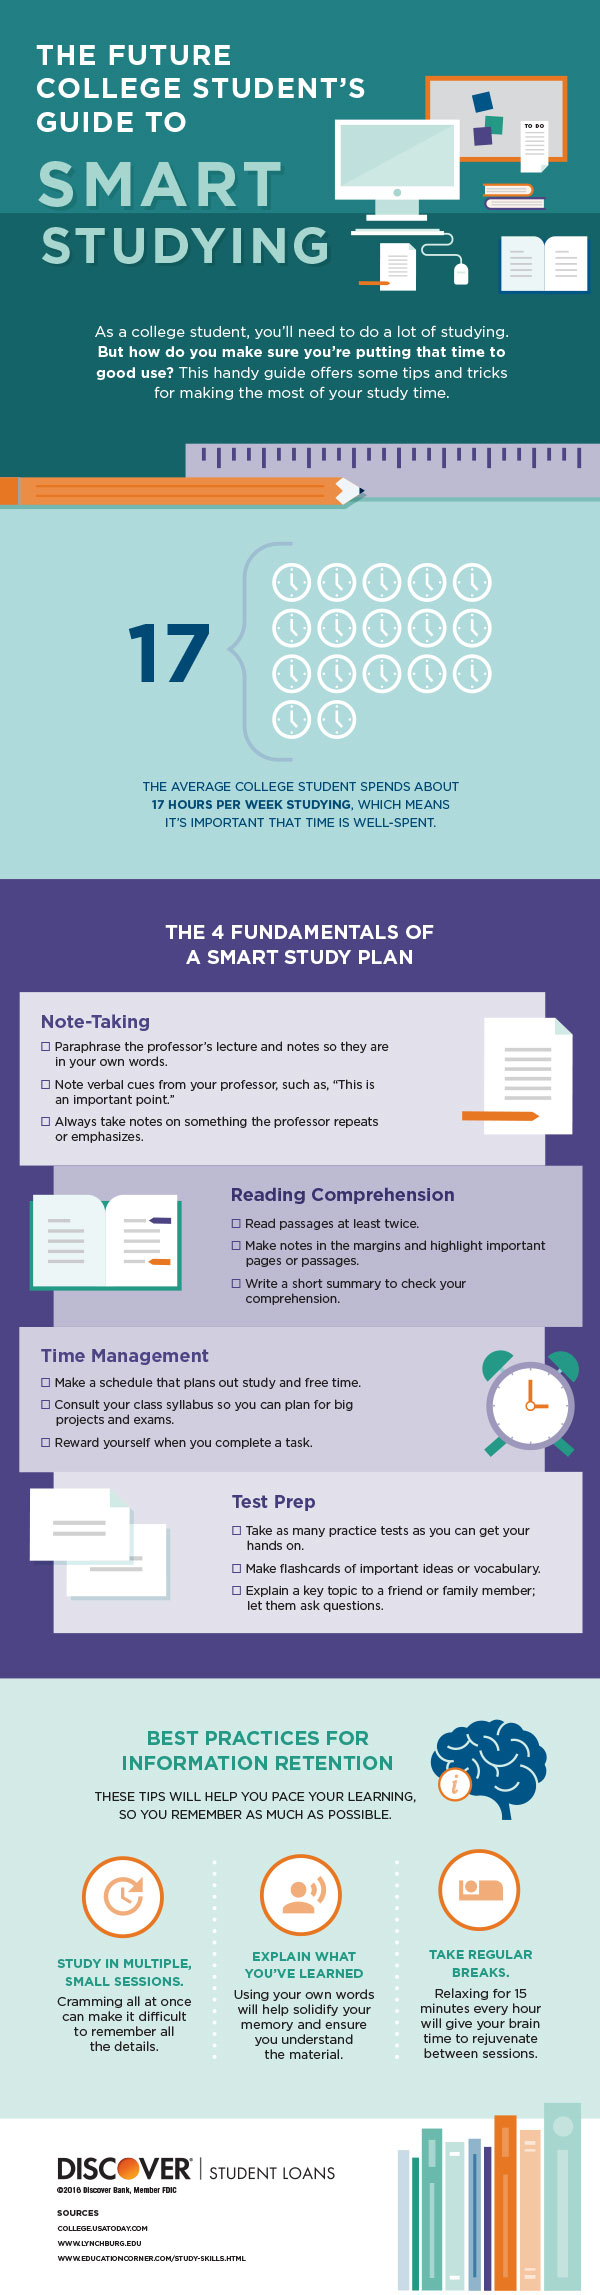 How to Study Smart in College - Infographic